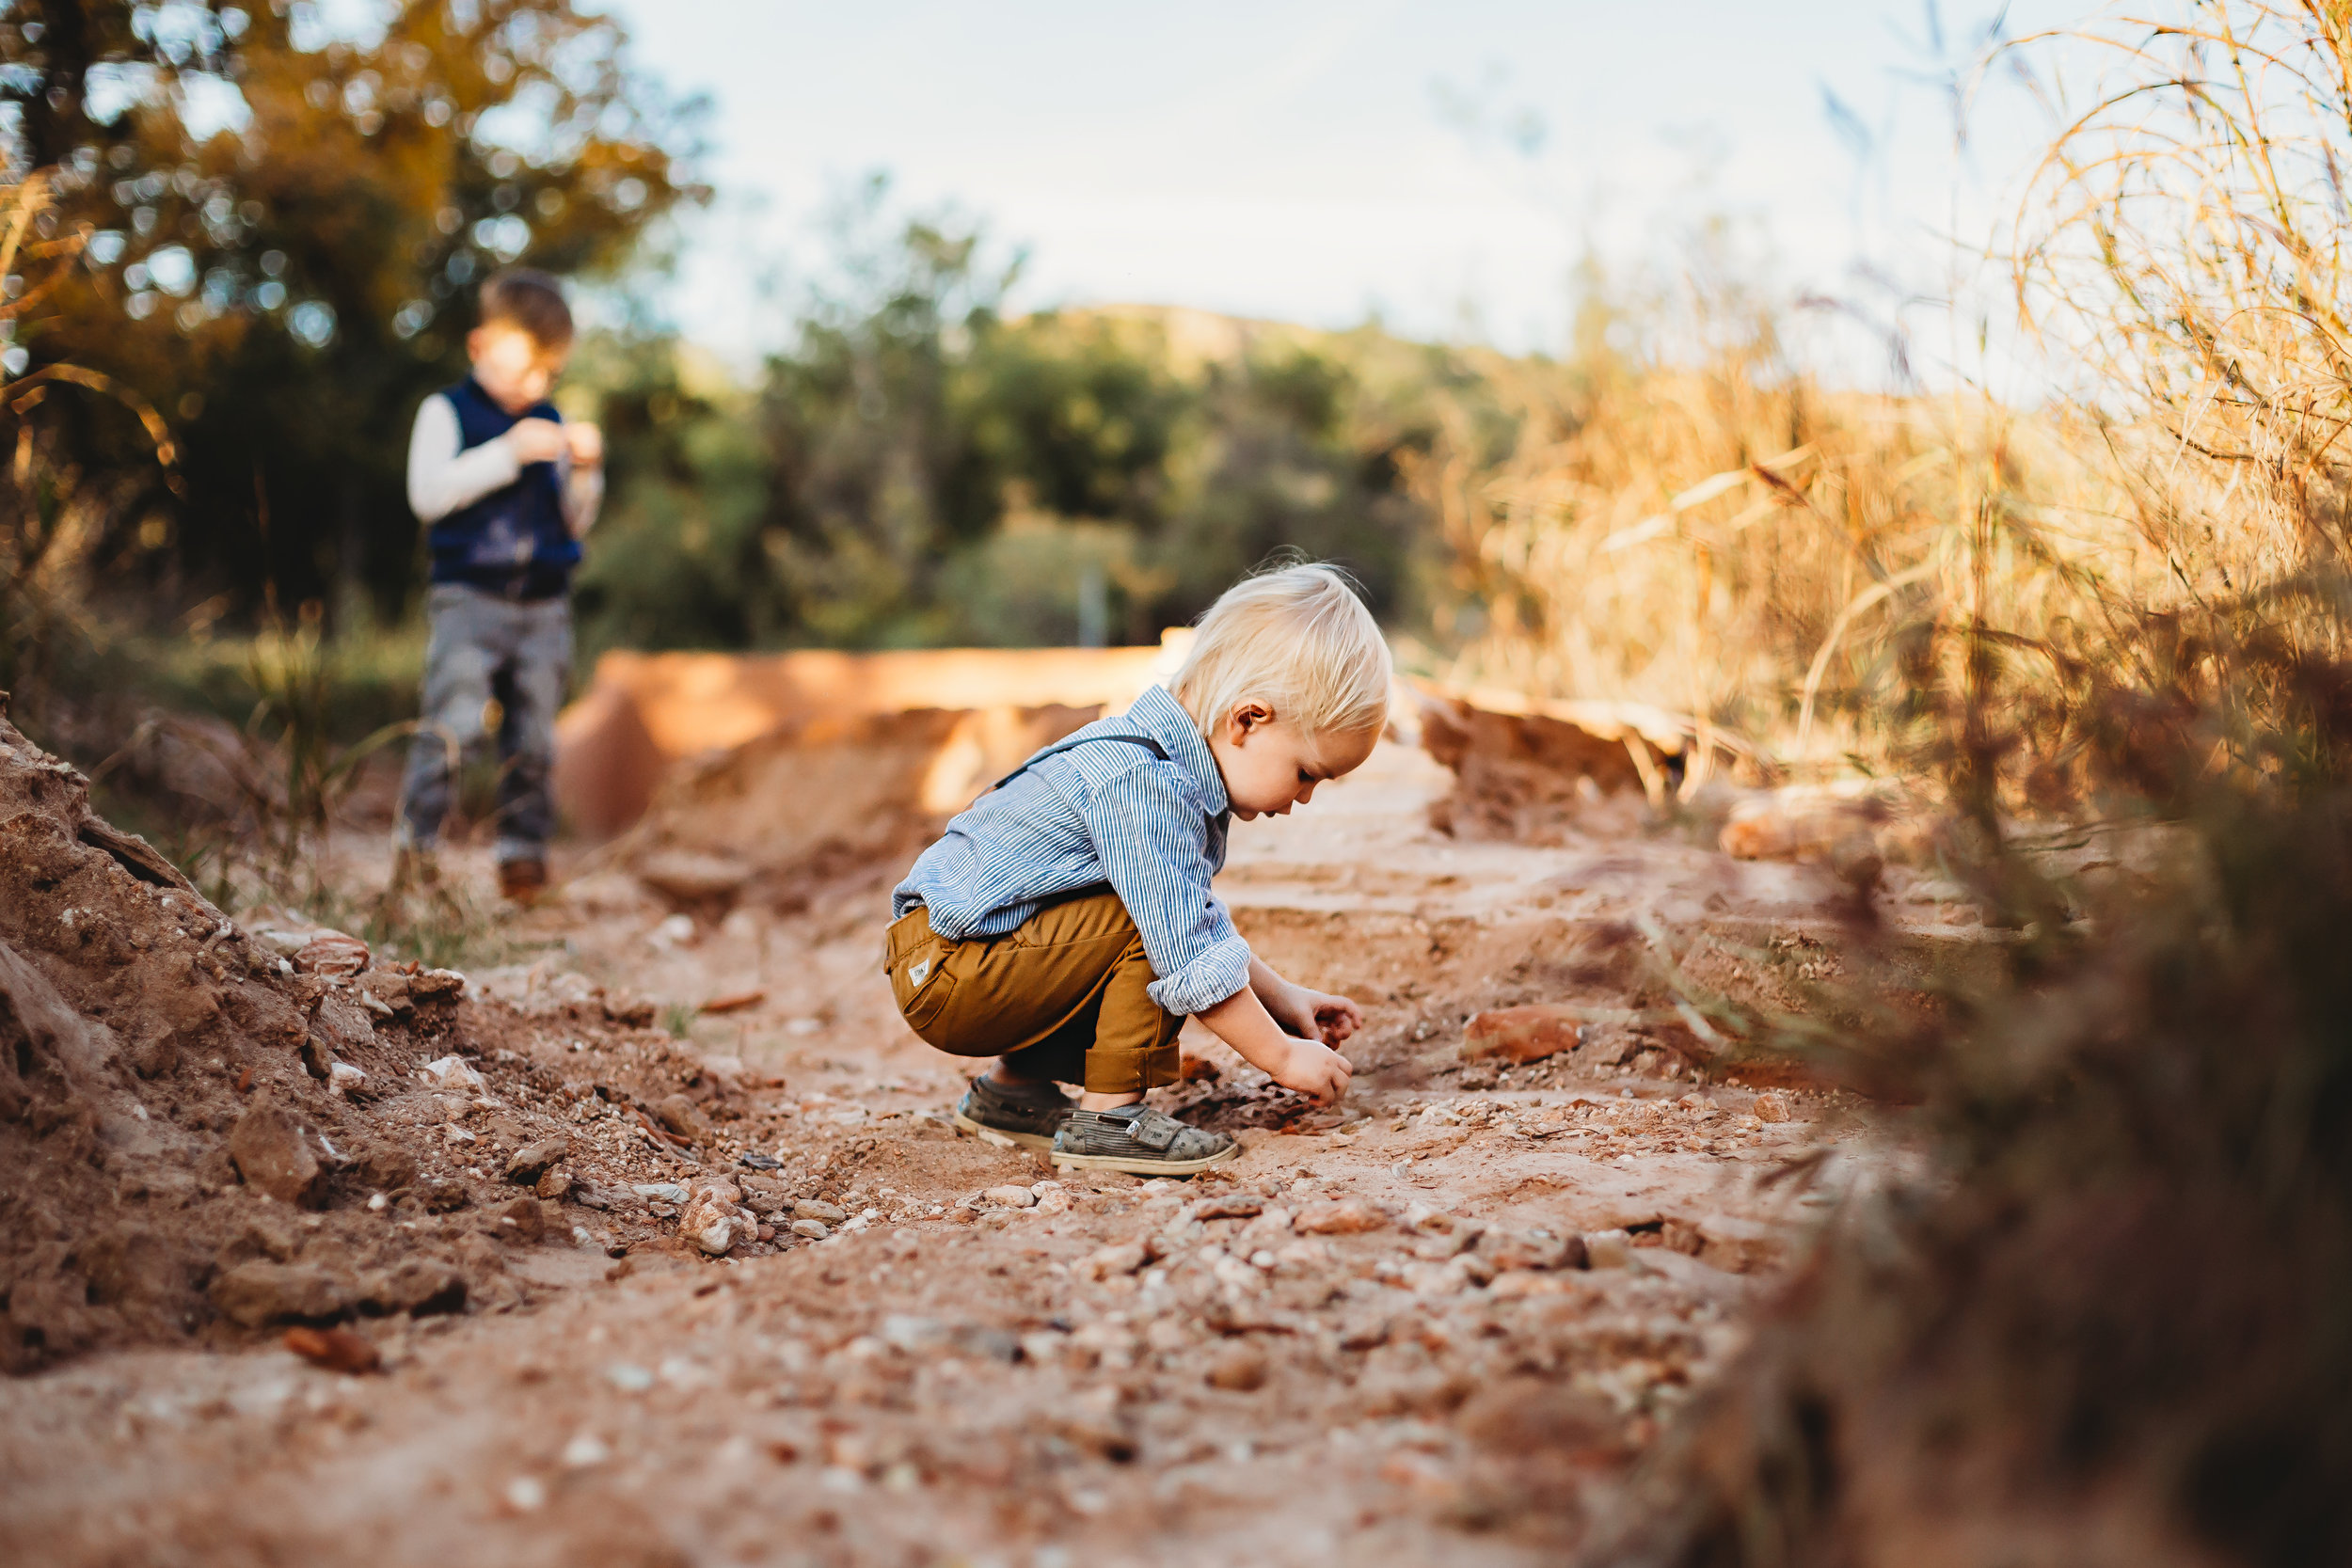 Focus on boy playing with rocks and brother in the background #tealawardphotography #texaslocationchoice #amarillophotographer #amarillofamilyphotographer #emotionalphotography #engagementphotography #couplesphotography #pickingaphotosessionlocation #whatsimportant #everythingtogether #pickingcolorsforphotos #location #photosessionlocation